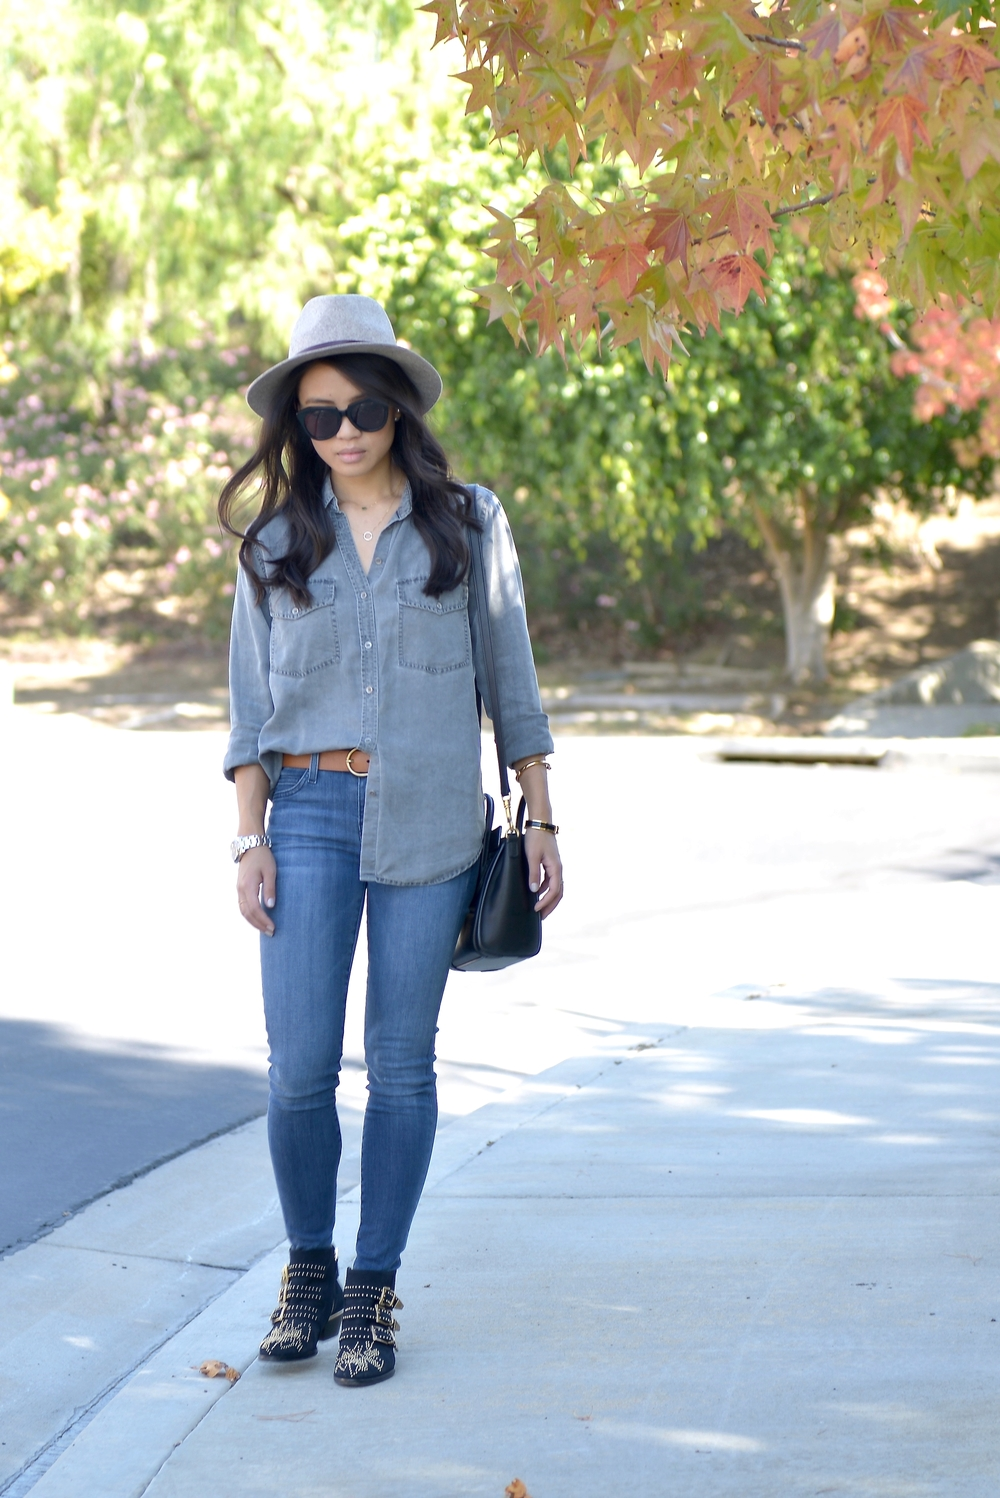 Just Goh With It-Outfit-Current-Elliott-Shirt-Blue-Jeans-Chloe-Susanna-Ankle-Boots-7.jpg